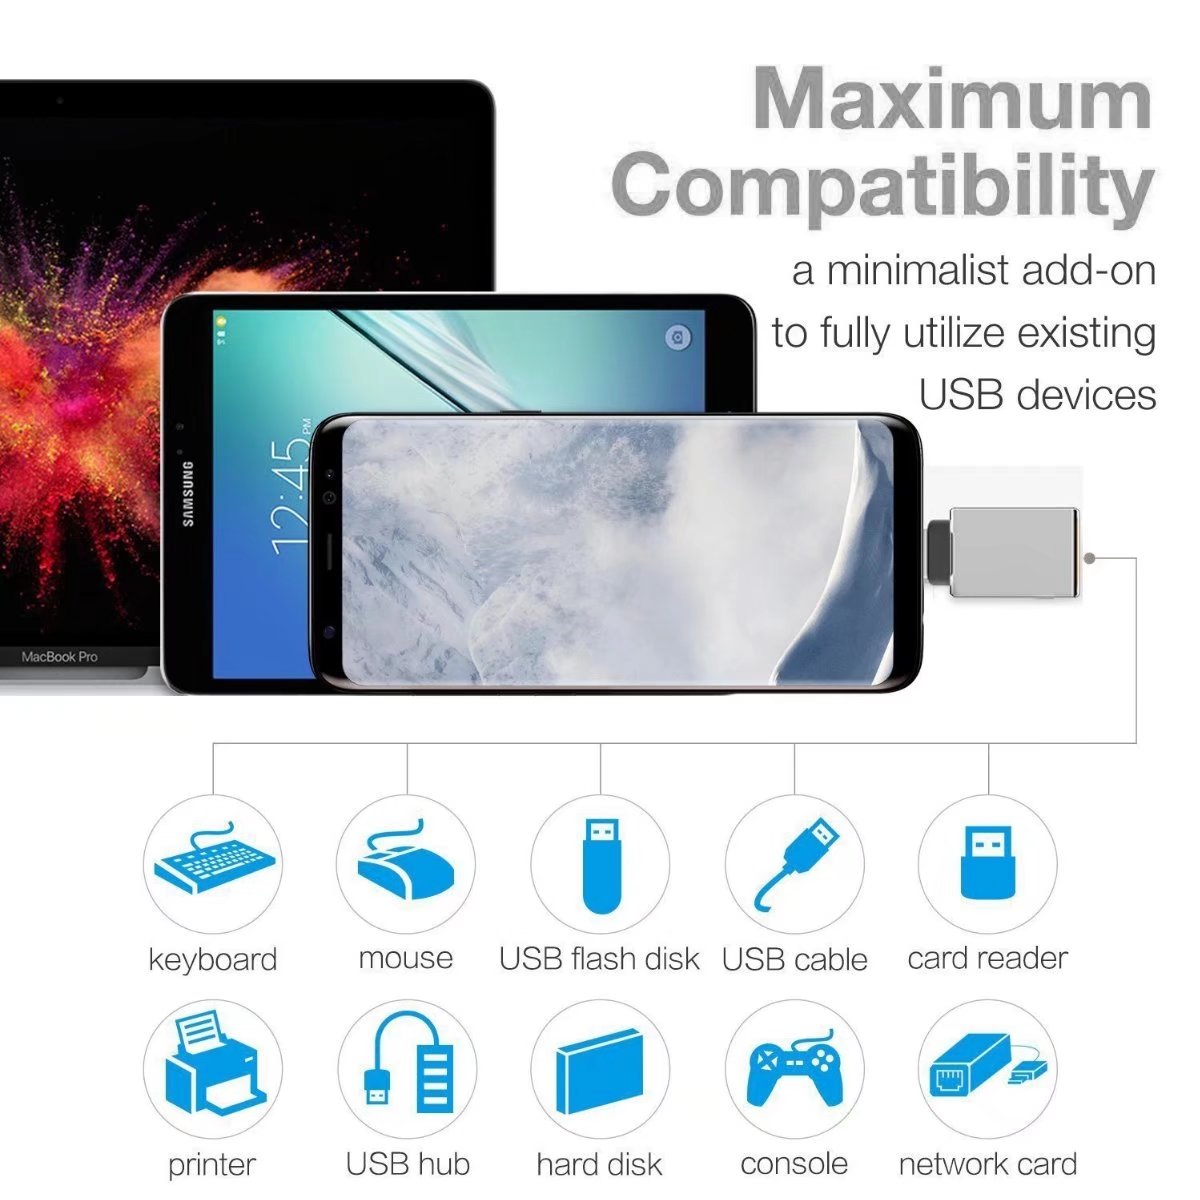 Mobile Phone Accessories Reliable Usb Type C To Micro Usb Adapter Charger For Sony Xperia 1 Xz3 L1 L2 L3 Xz Xz1 Xz2 Premium X Compact Xa1 10 Plus Xa2 Ultra Xa3 Mobile Phone Adapters